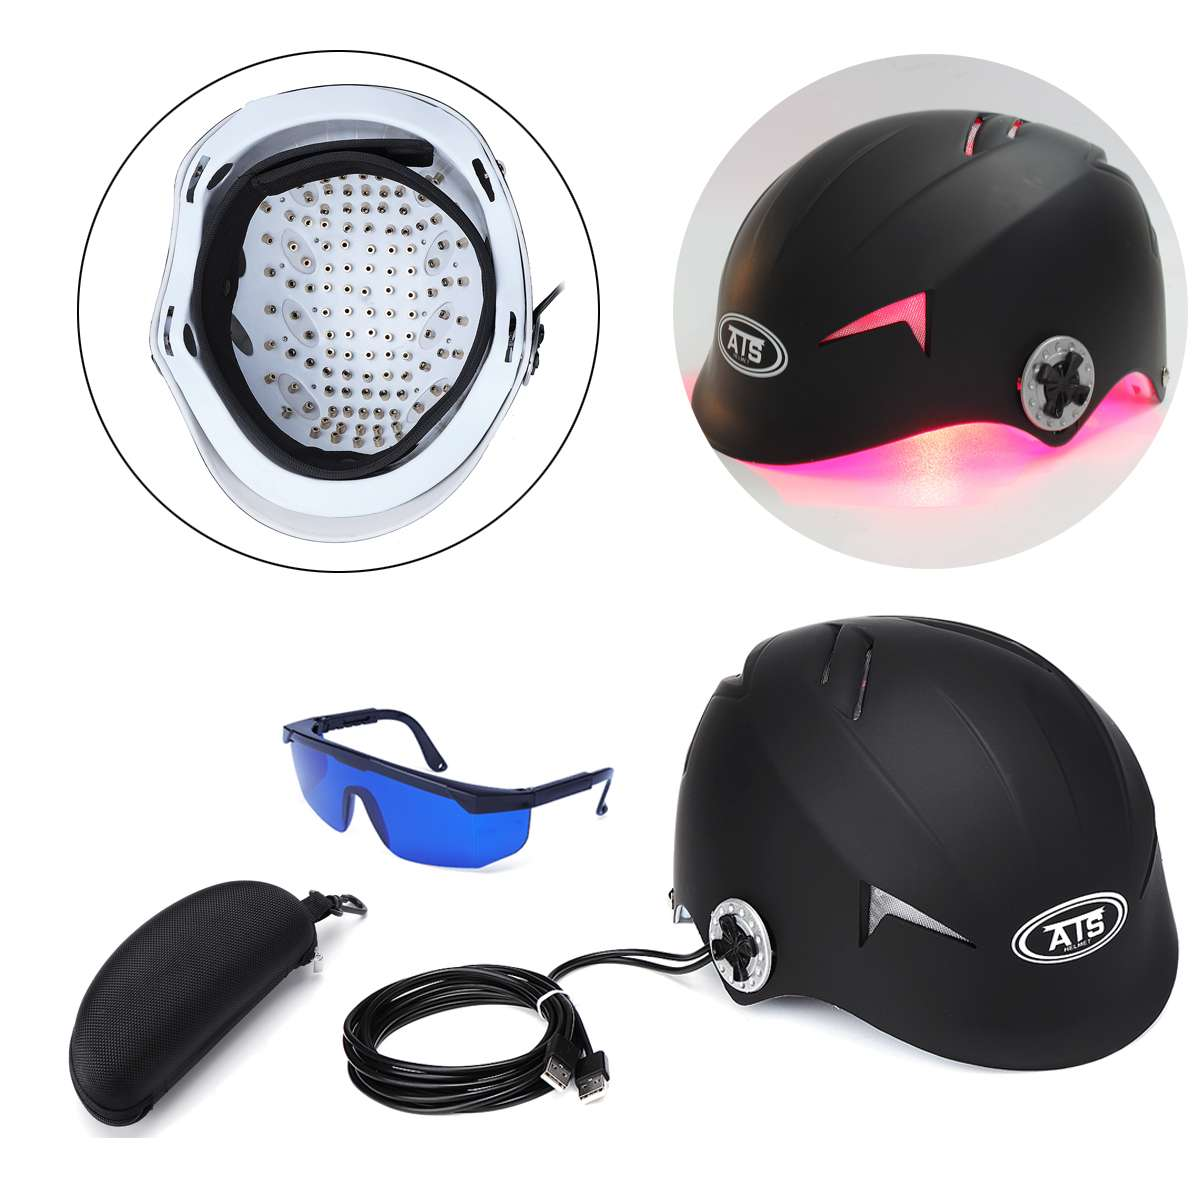 Upgrate Hair Regrowth Laser Helmet Hair Loss Medical Therapy Laser Cap 128 Diodes Hair Fast Regrowth